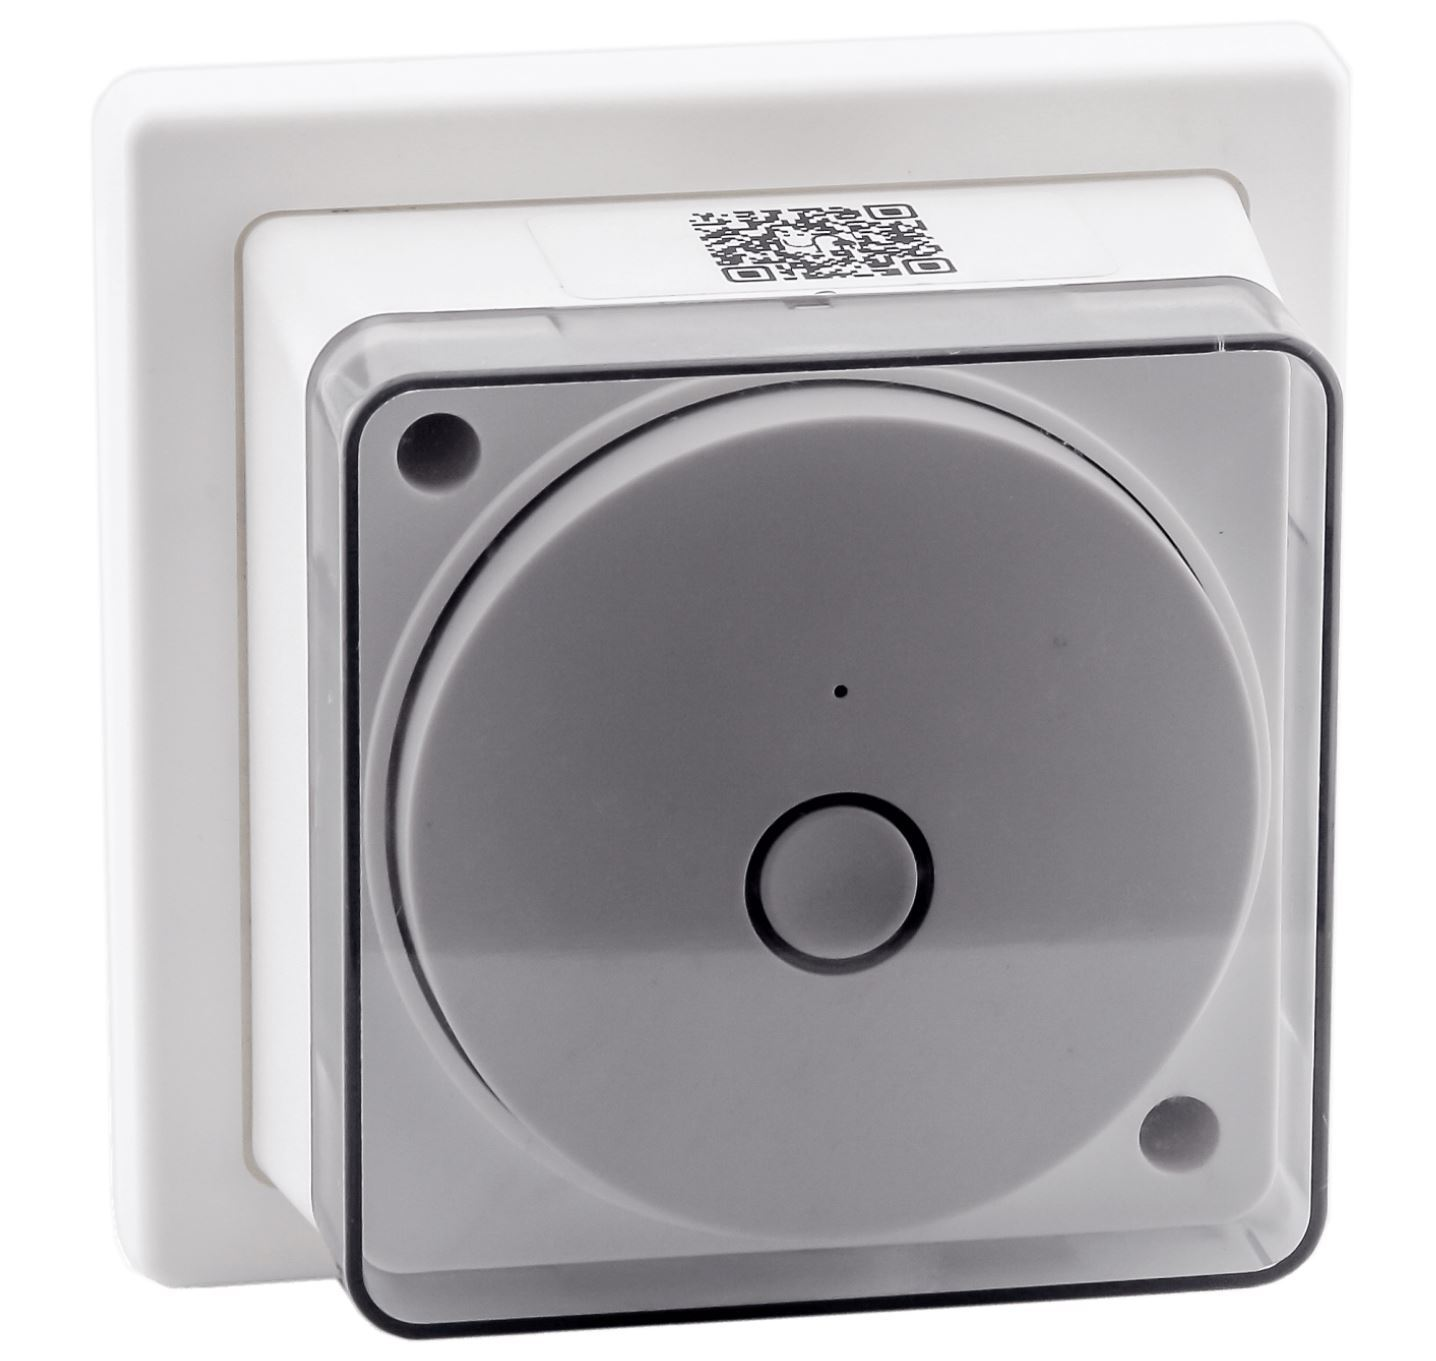 Optimum Wi-Fi Socket Box Timer Wall Controller For Electric Heated Towel Rail Radiators